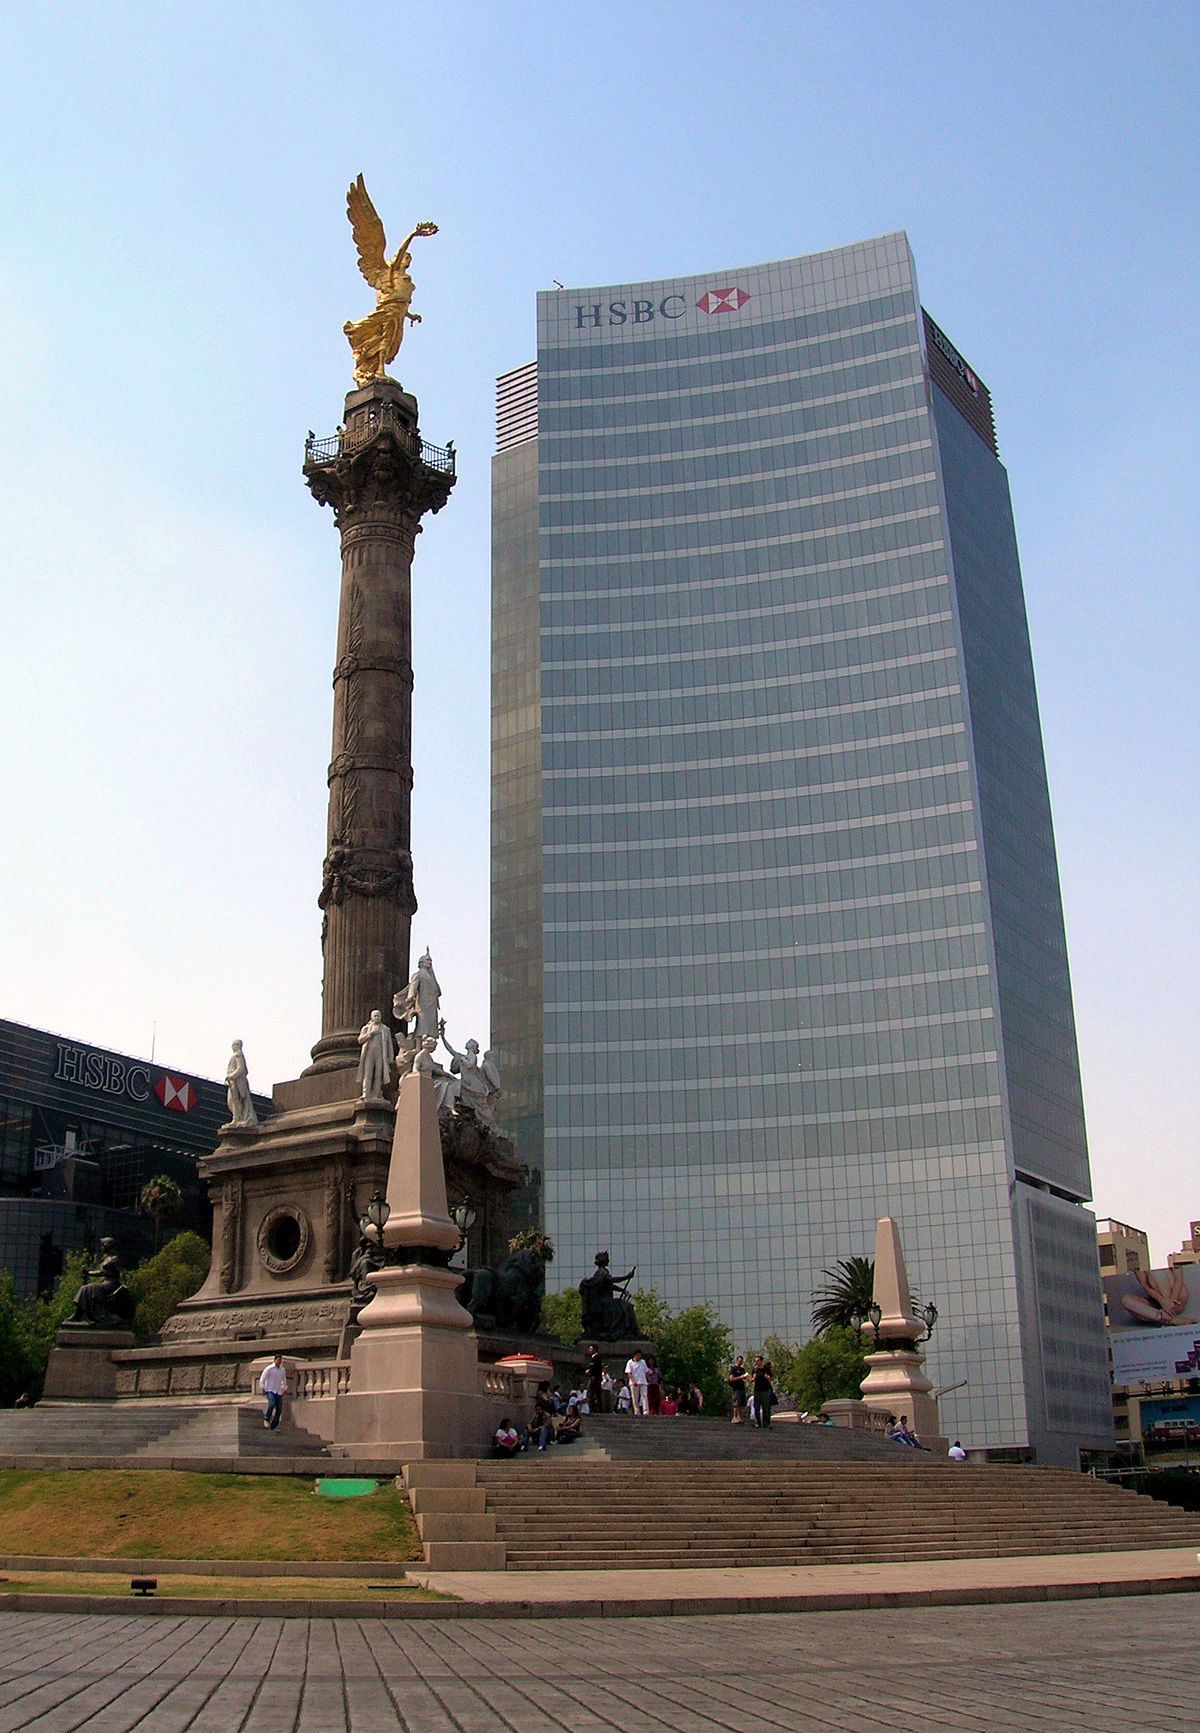 HSBC Tower, Mexico City